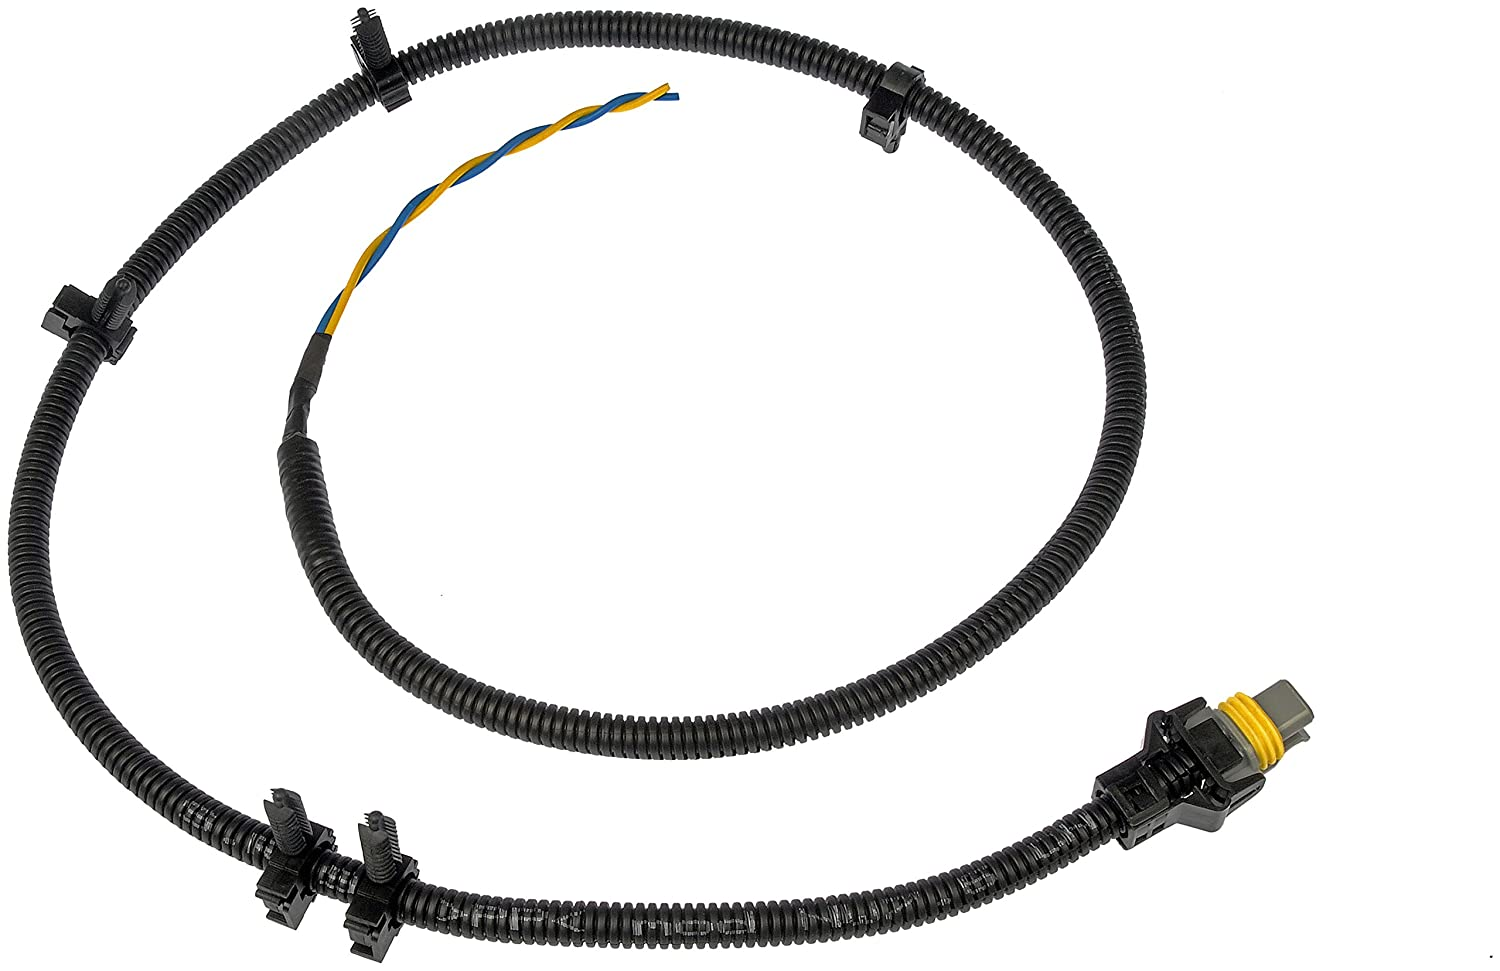 Amazon.com: Dorman 970-040 ABS Wheel Speed Sensor Wire Harness ...